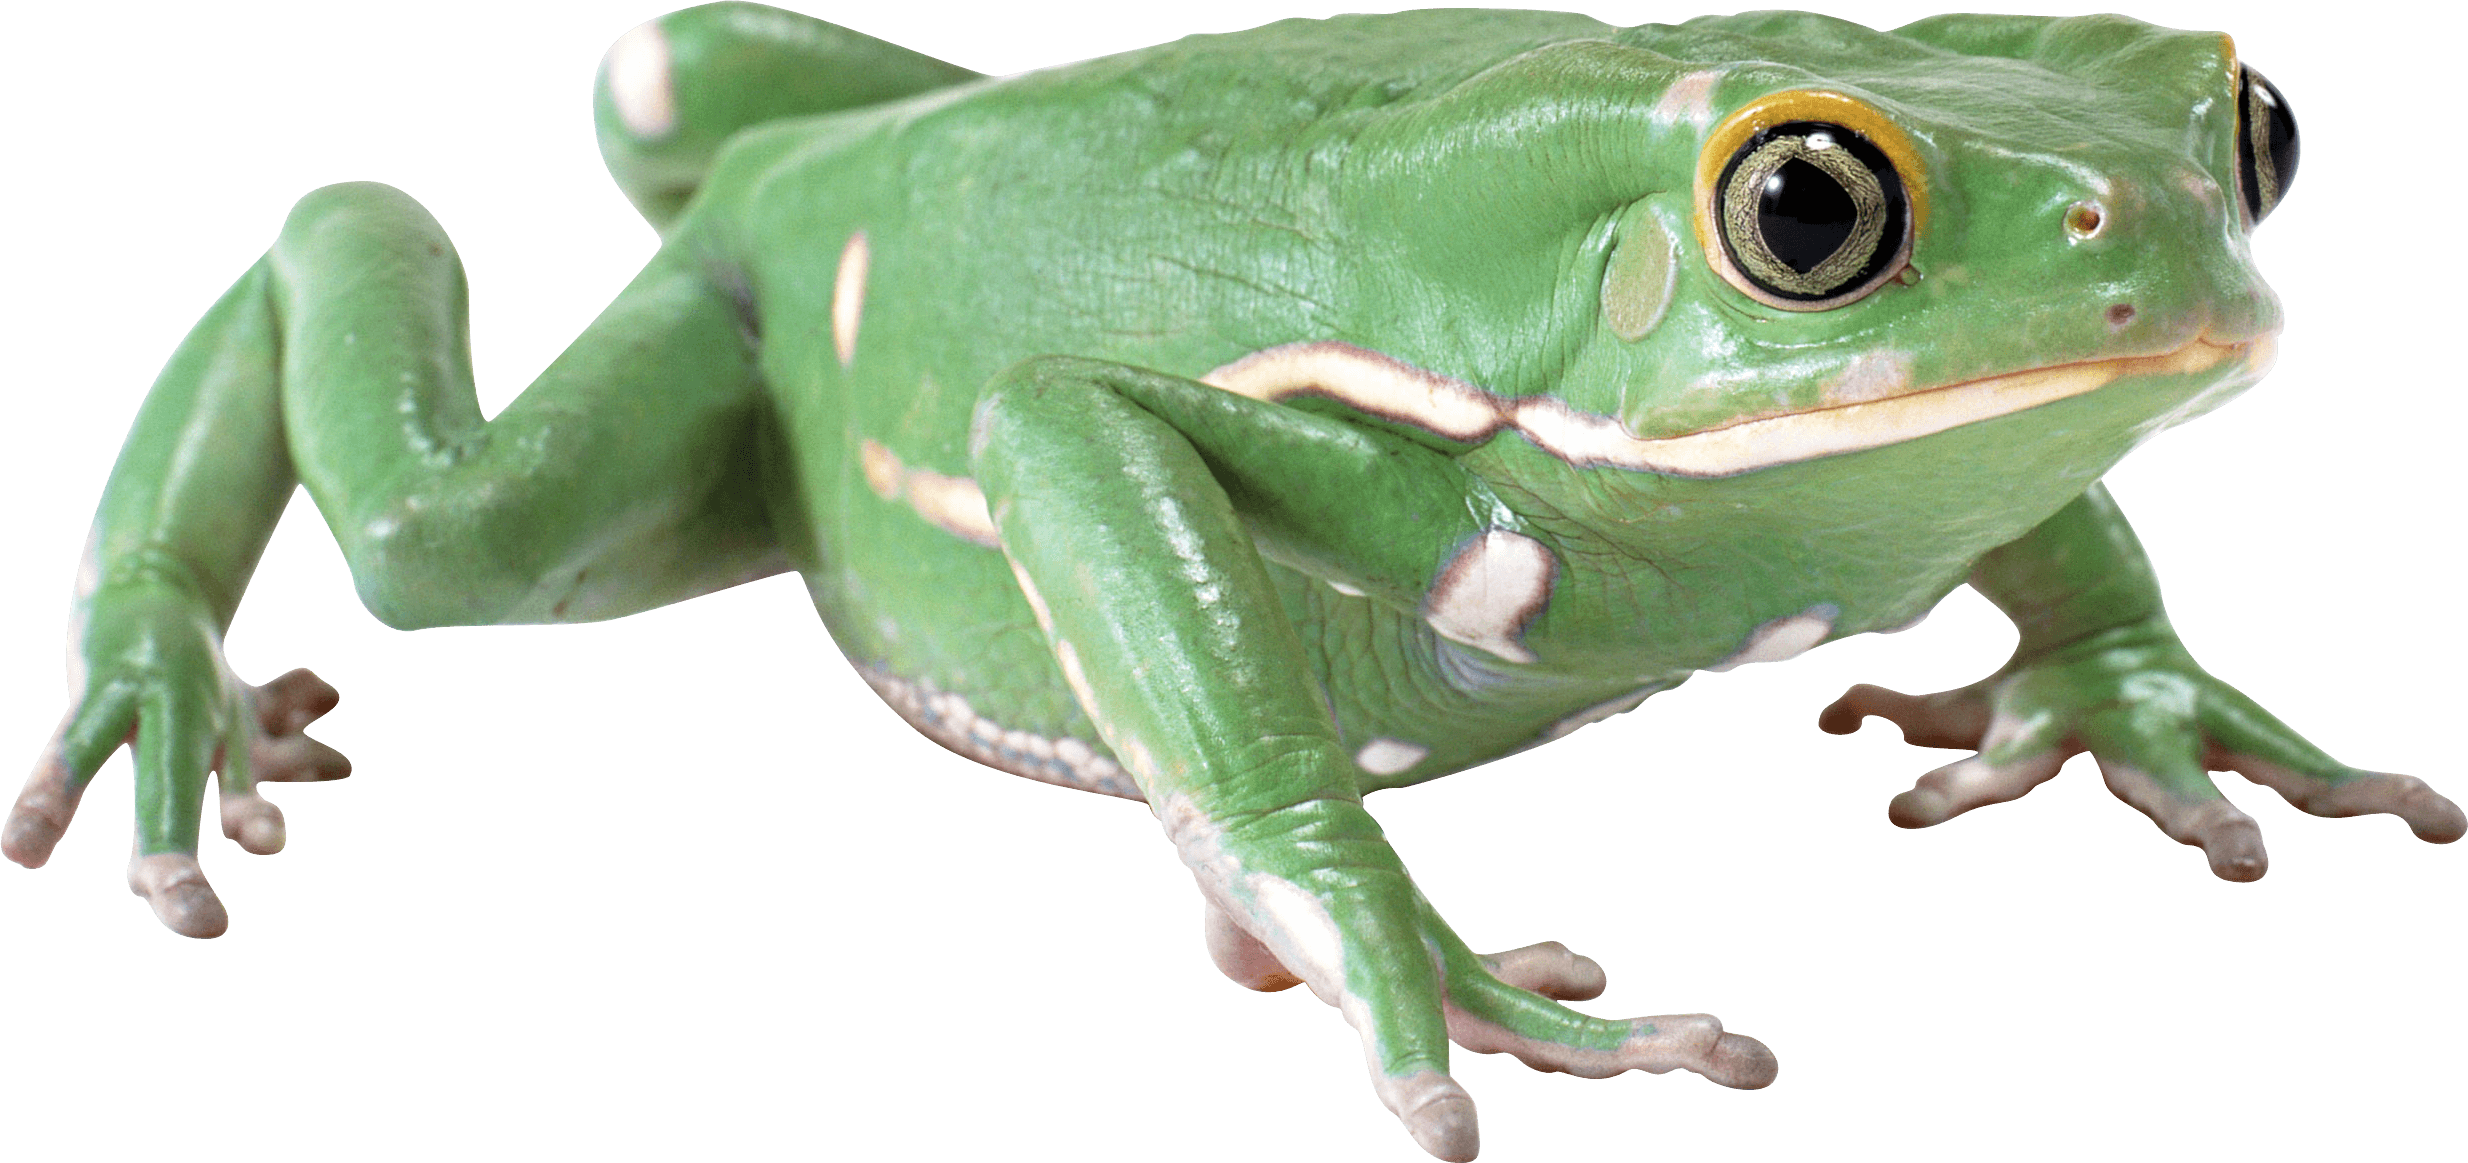 Green image purepng free. Wednesday frog png clip art royalty free download